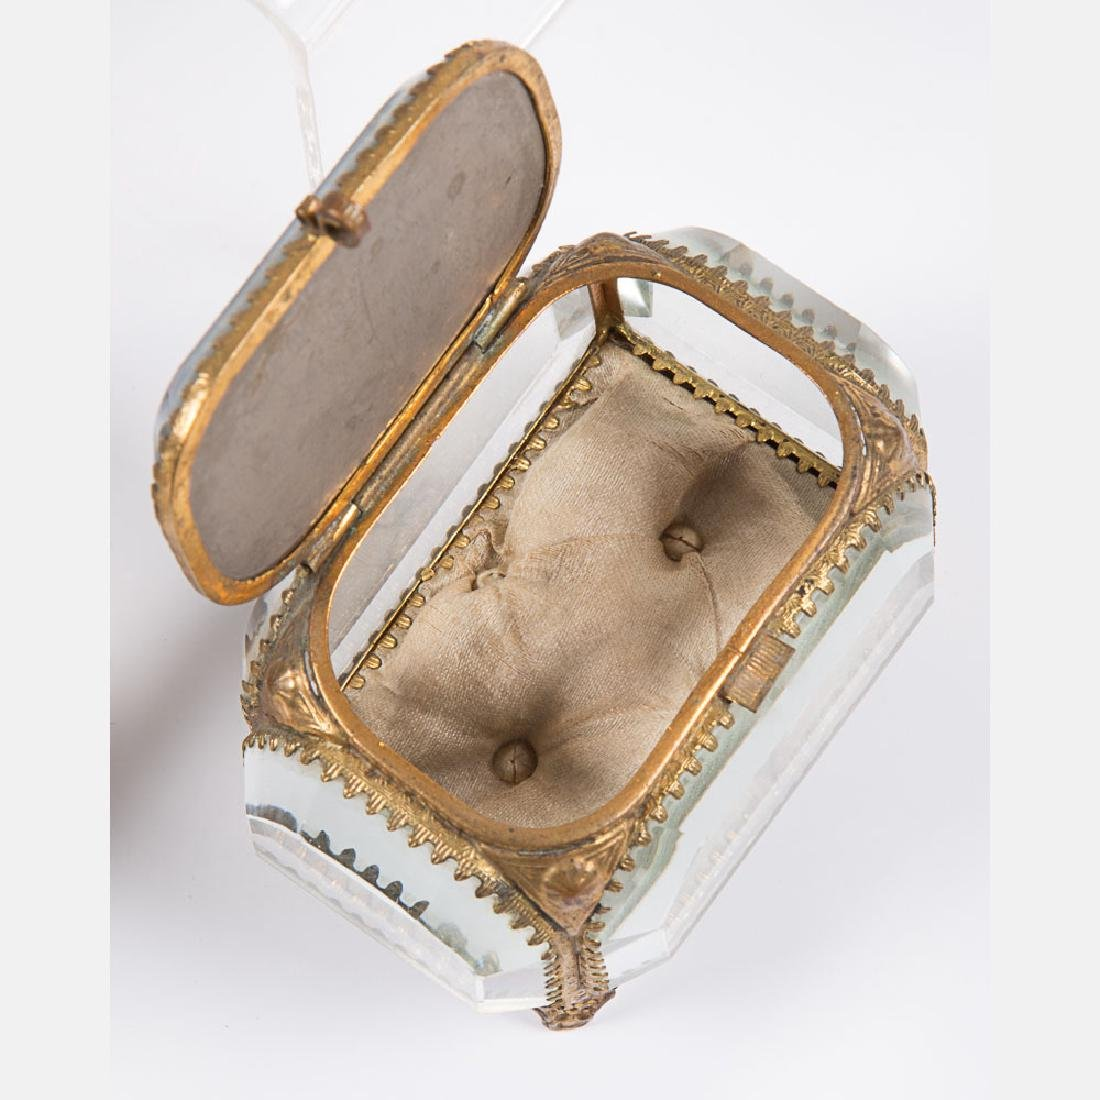 A Group of Five Glass and Brass Jewelry Boxes from the - 5